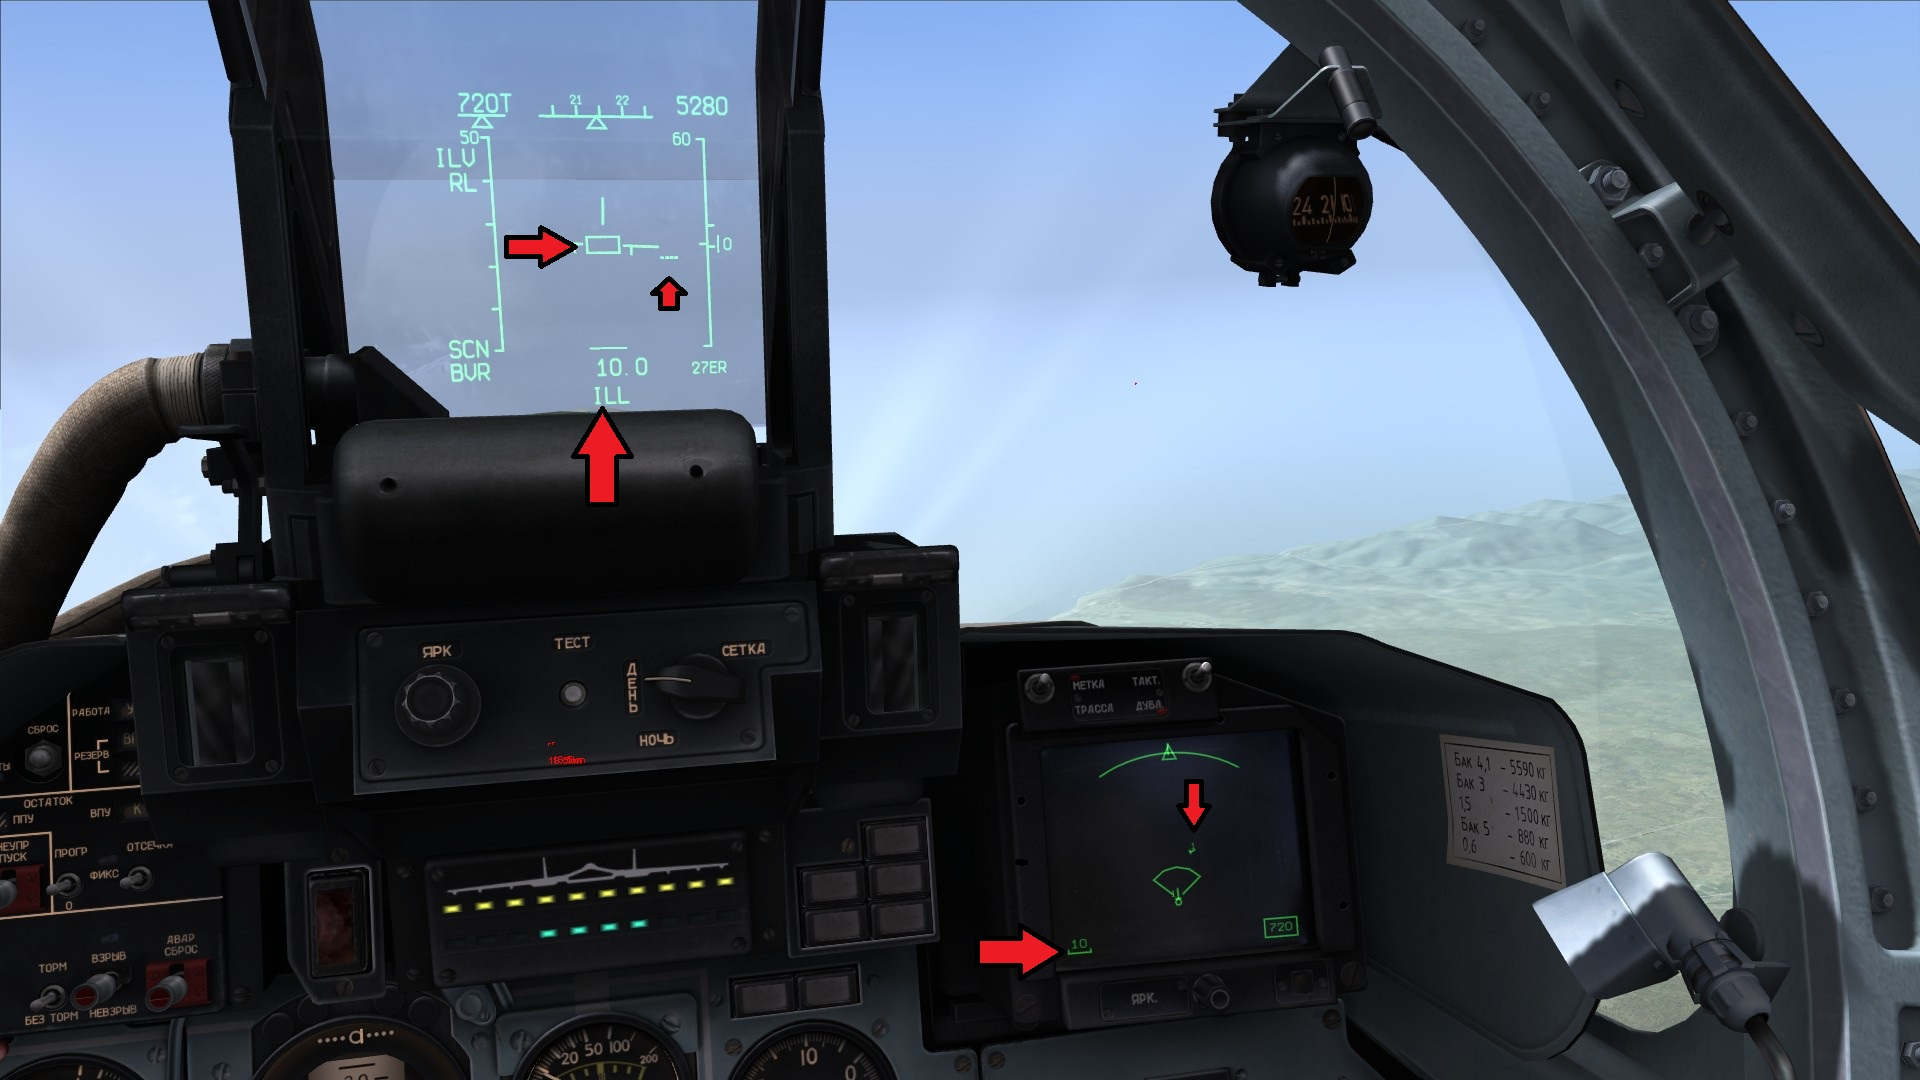 Steam Community Guide Su 27 Flanker Beginners Dcs Wiring Diagram Press I To Activate The Radar Notice Left Of Hud Says Rl Bottom Now Ill Indicate Is On